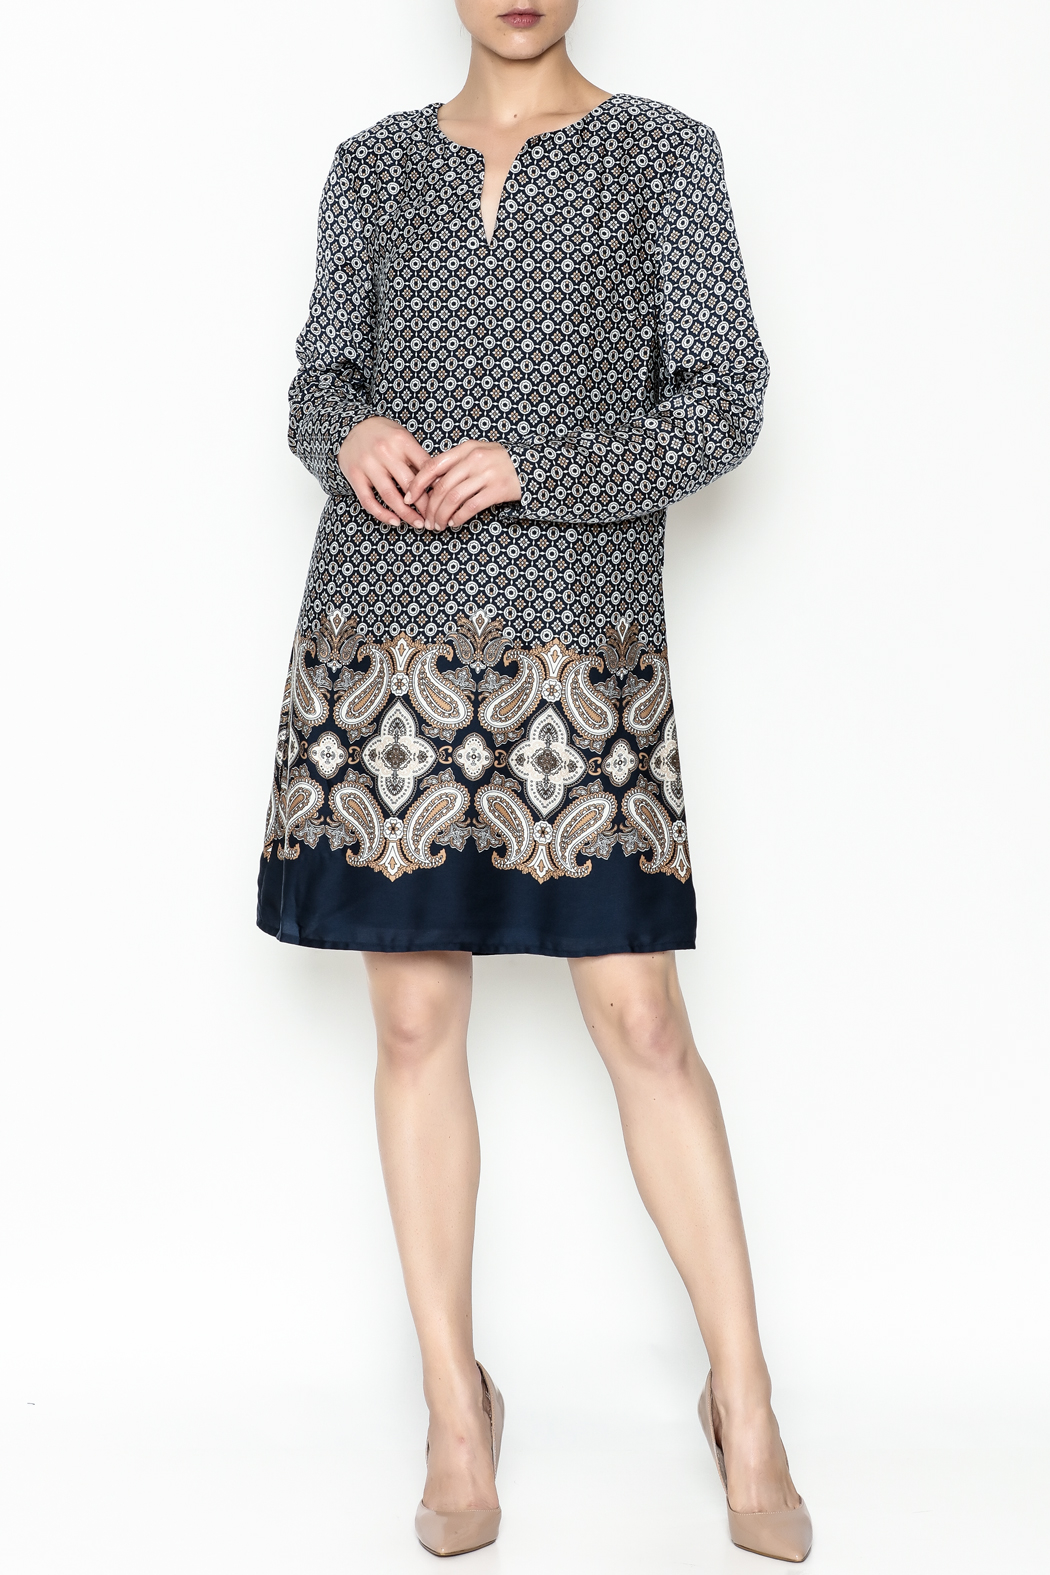 Charlie Paige Paisley Border Dress - Side Cropped Image